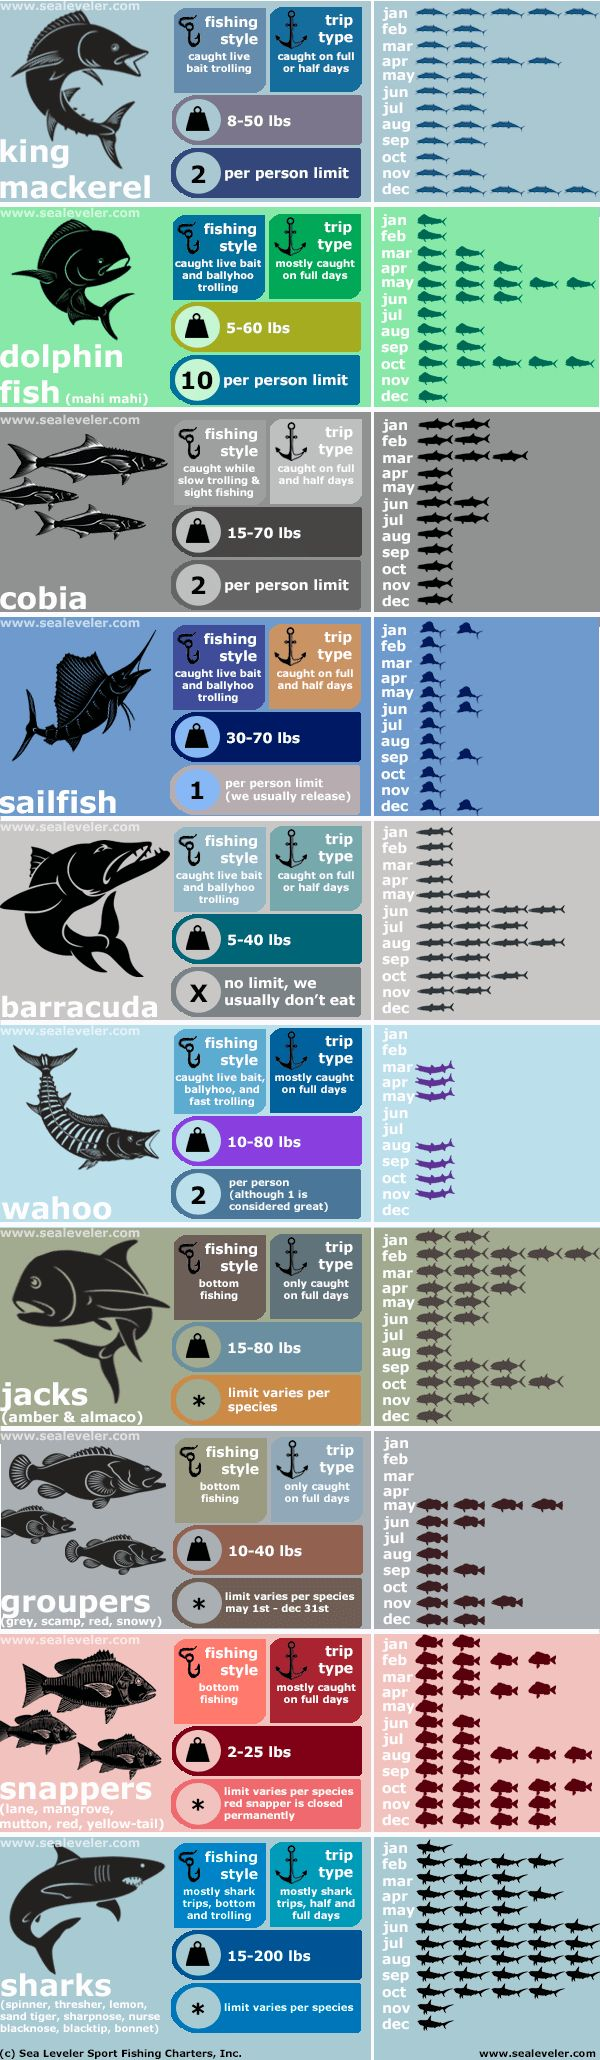 Sea Leveler Sport Fishing Charters Infographic- Fish Caught by month and type of charter trip